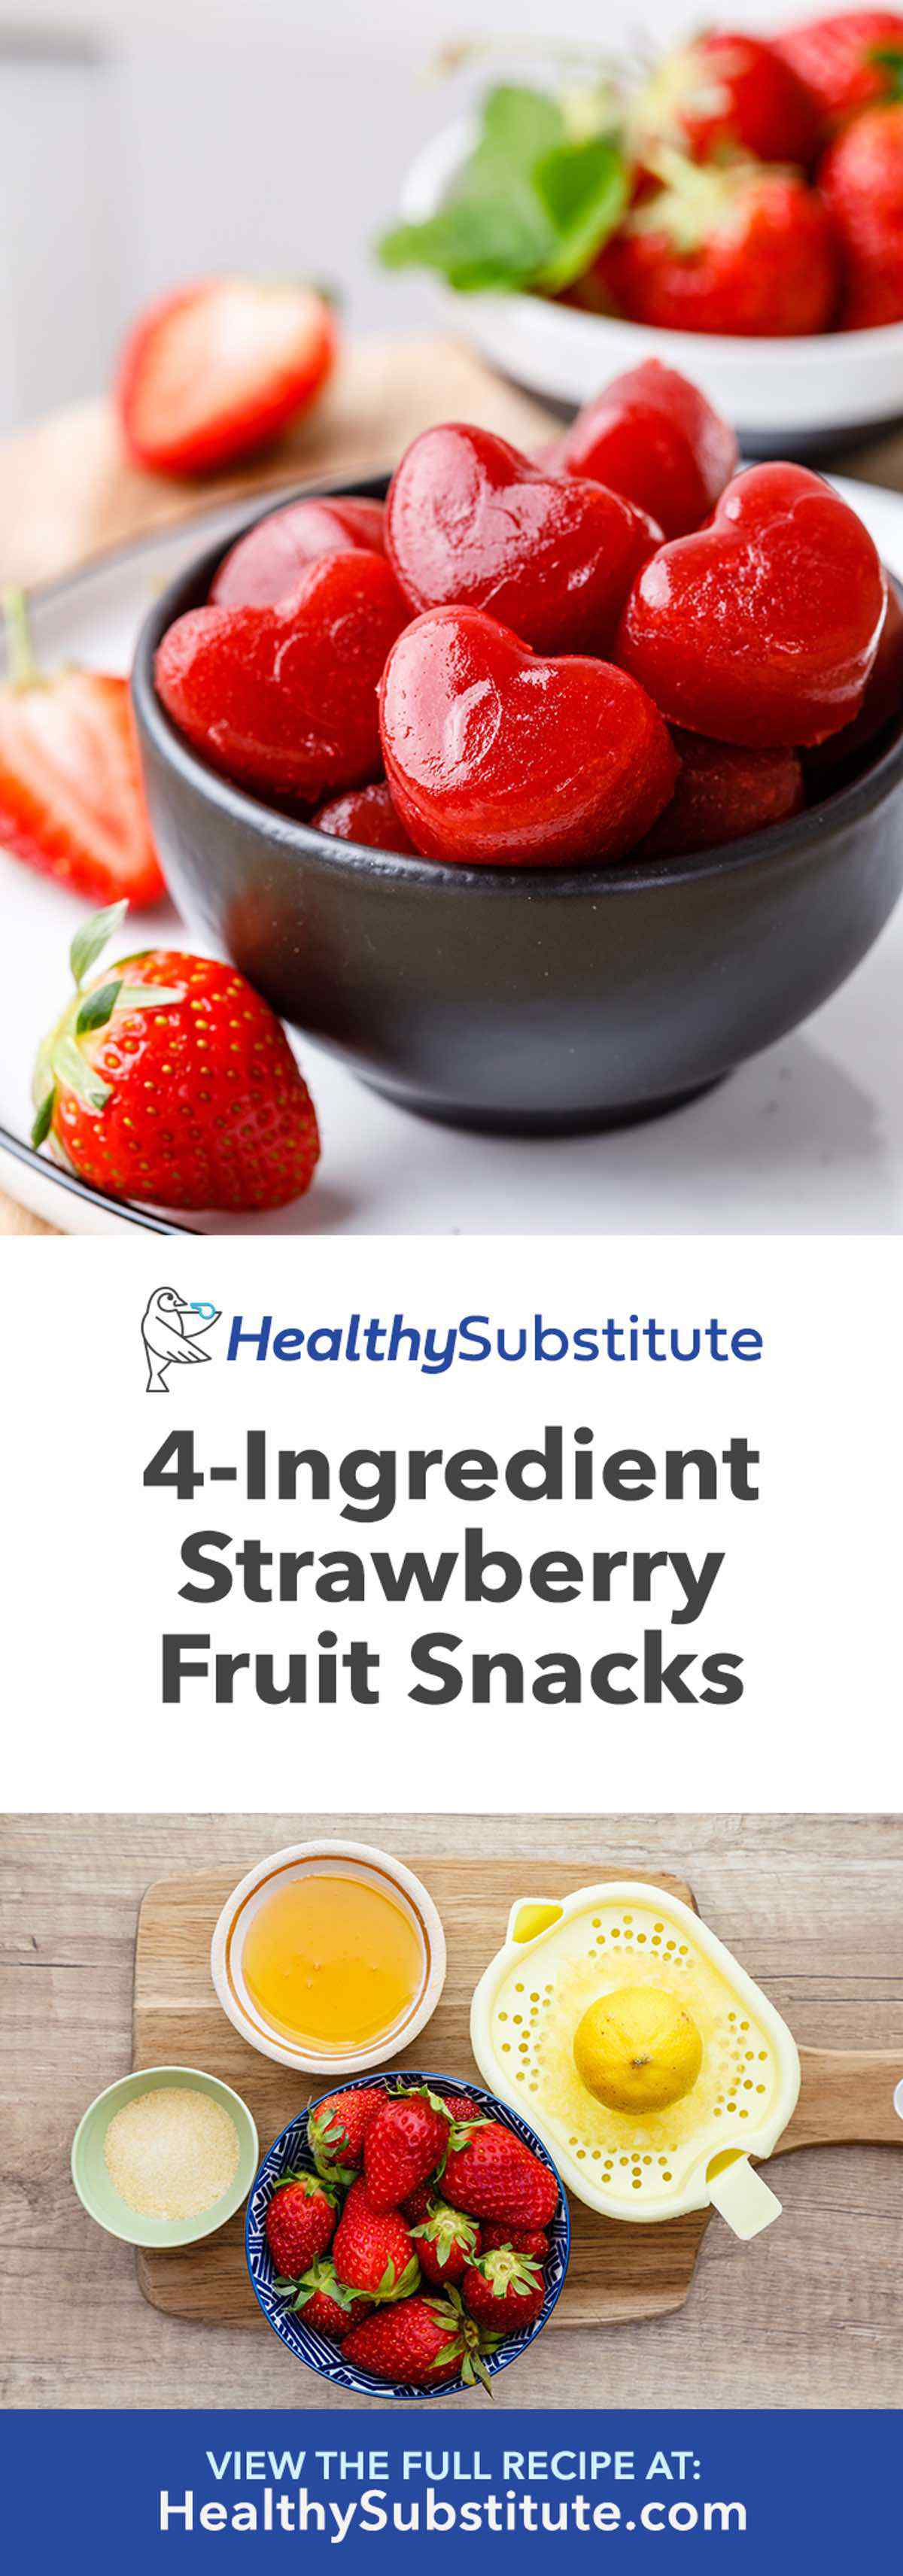 Easy 4-Ingredient Strawberry Fruit Snacks